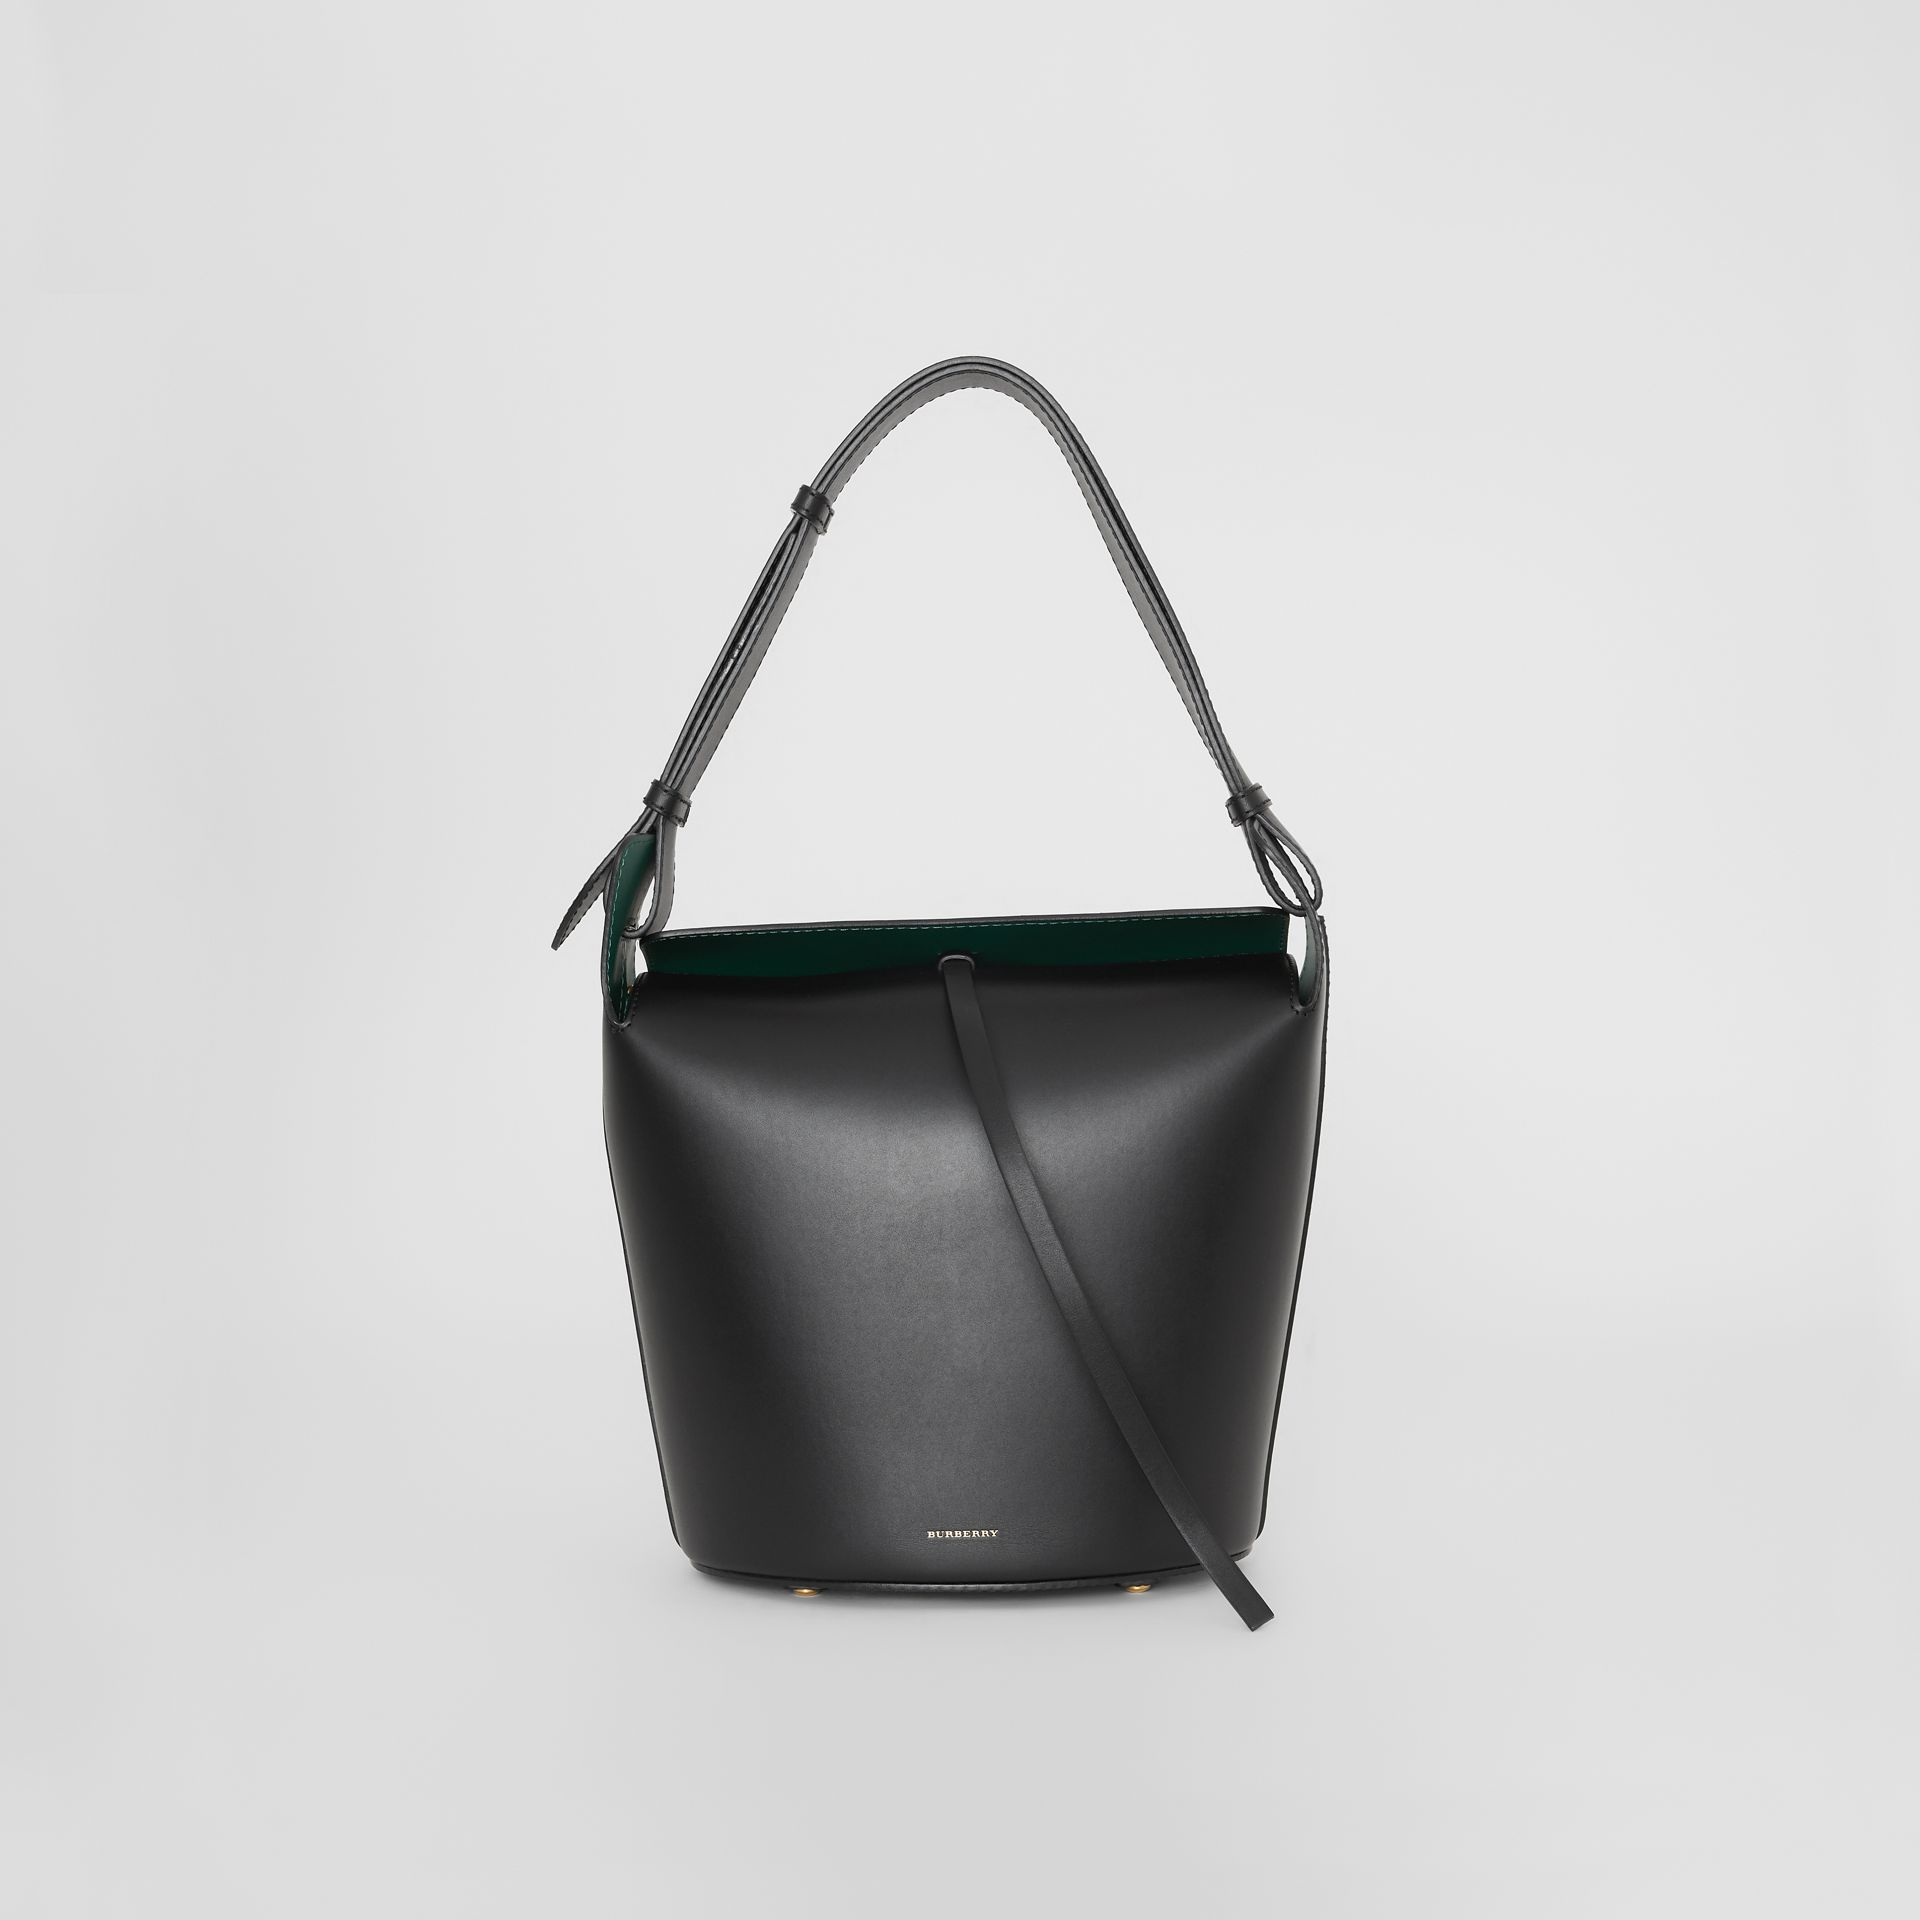 Sac The Bucket moyen en cuir (Noir) - Femme | Burberry - photo de la galerie 0